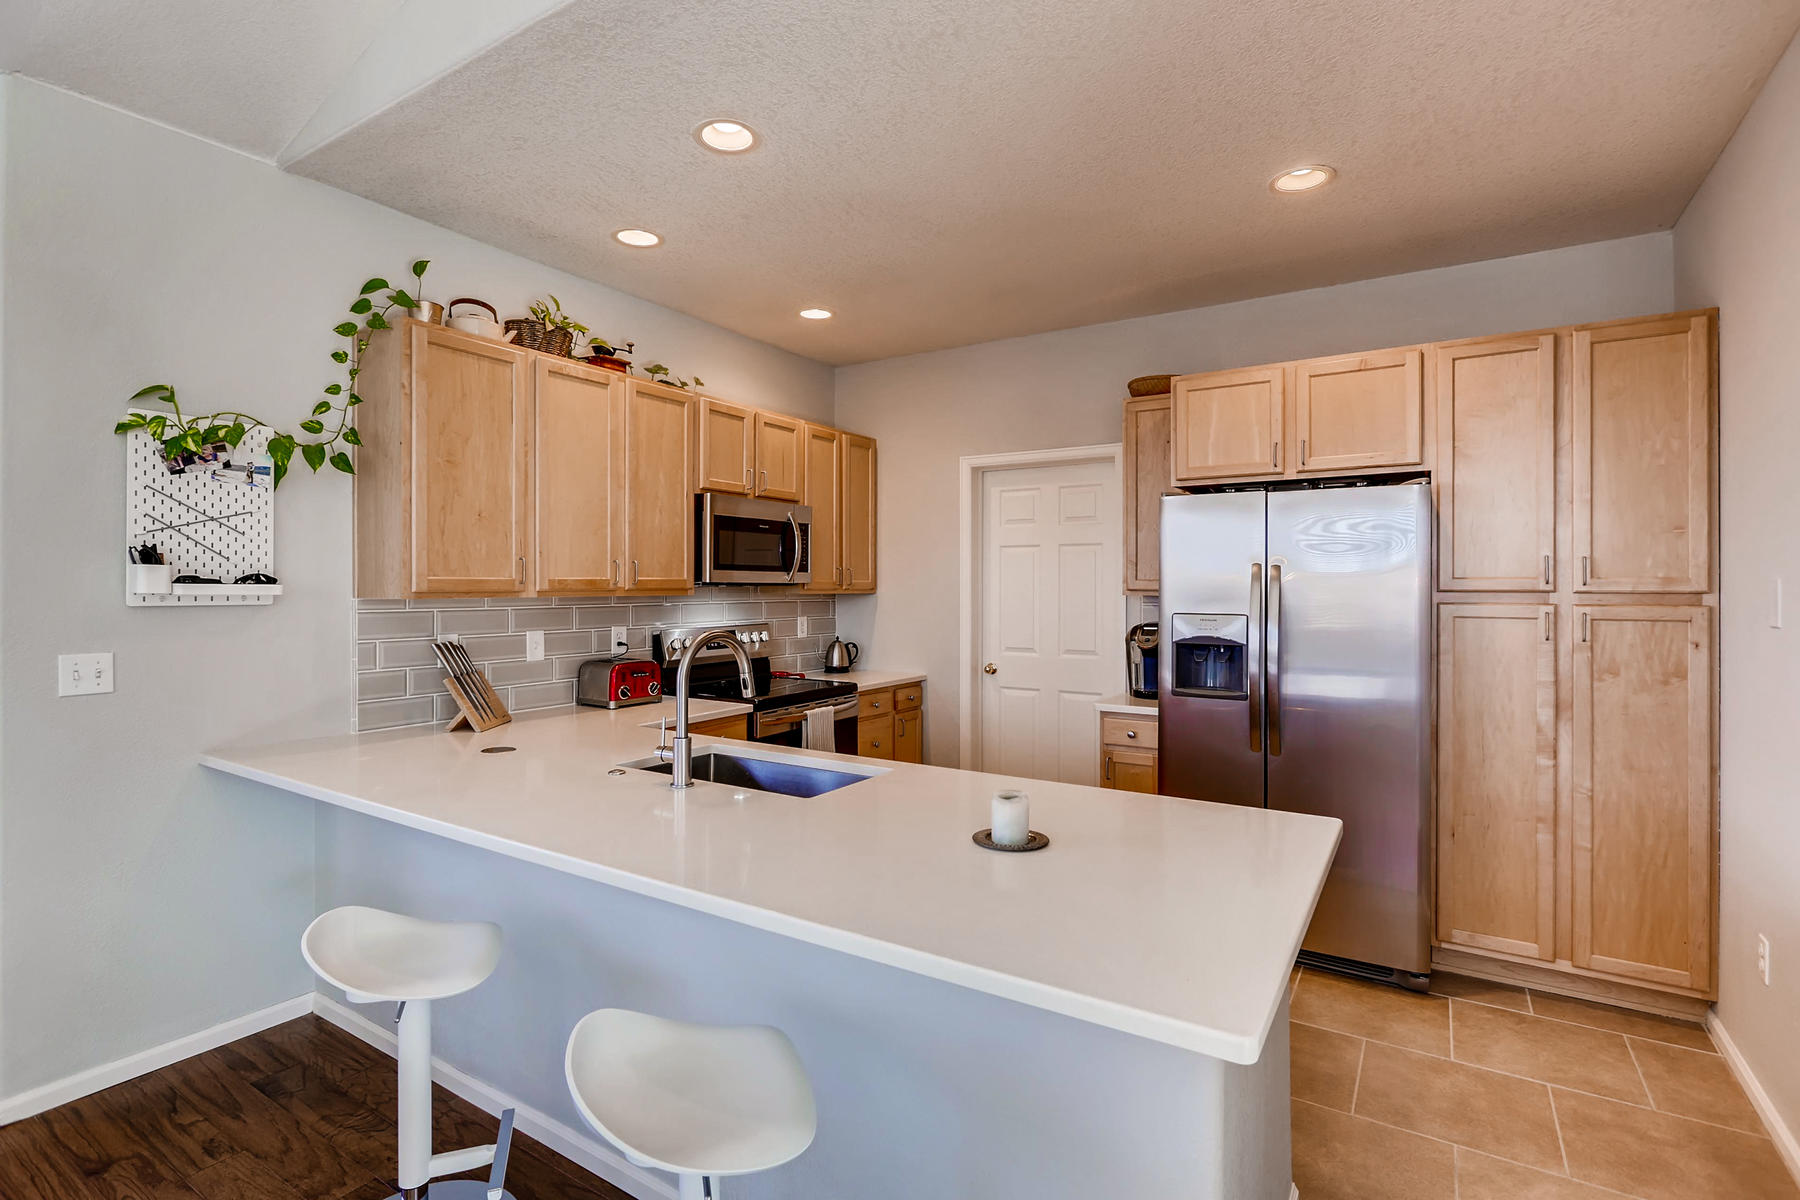 2142 S Fulton Cir 204 Denver-010-24-Breakfast Area-MLS_Size.jpg